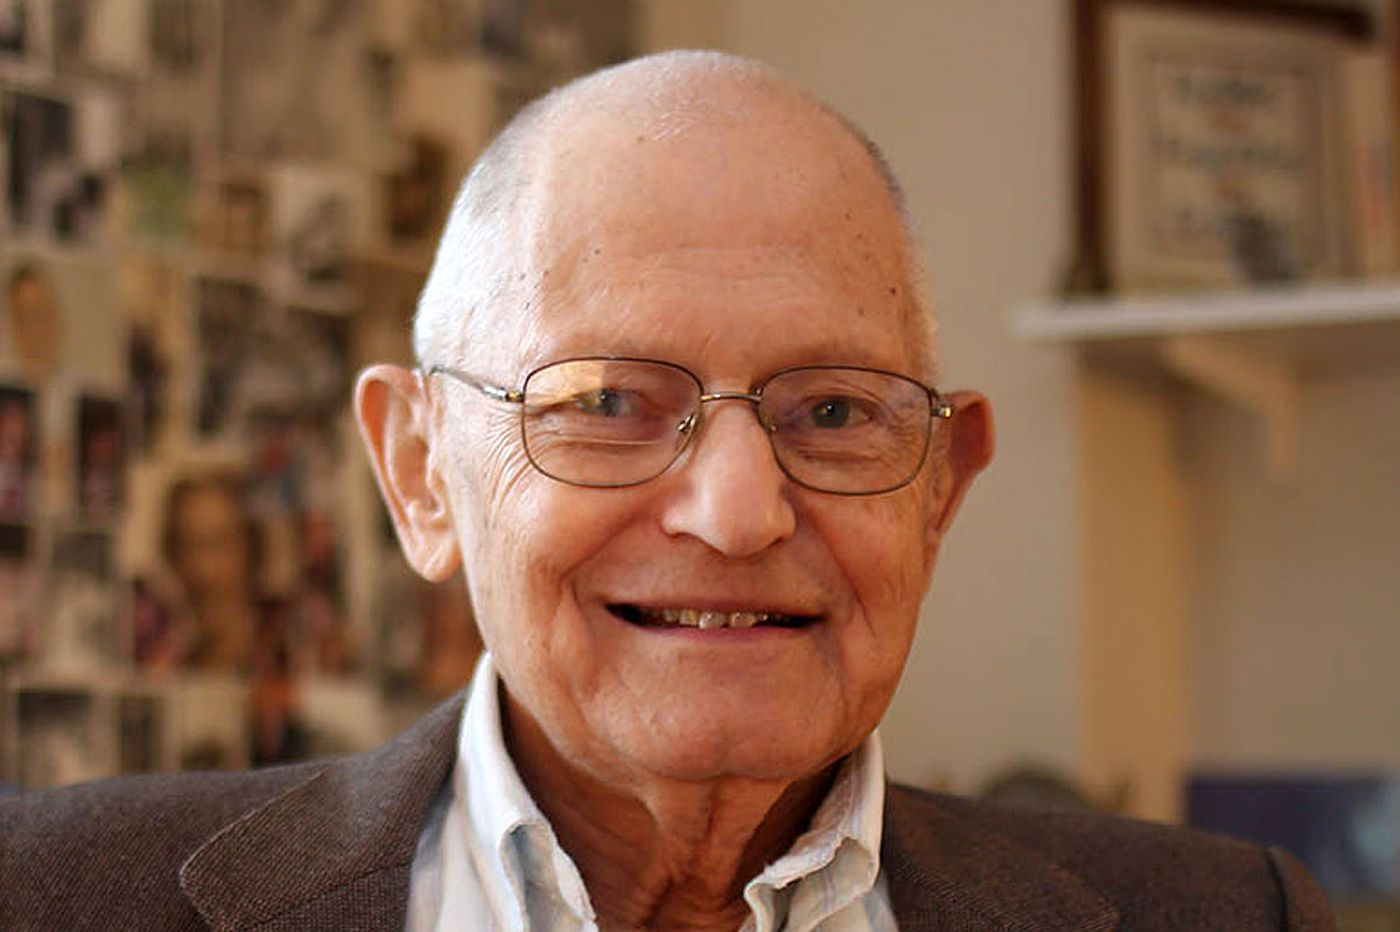 Harry Gross, Daily News personal-finance columnist, radio host